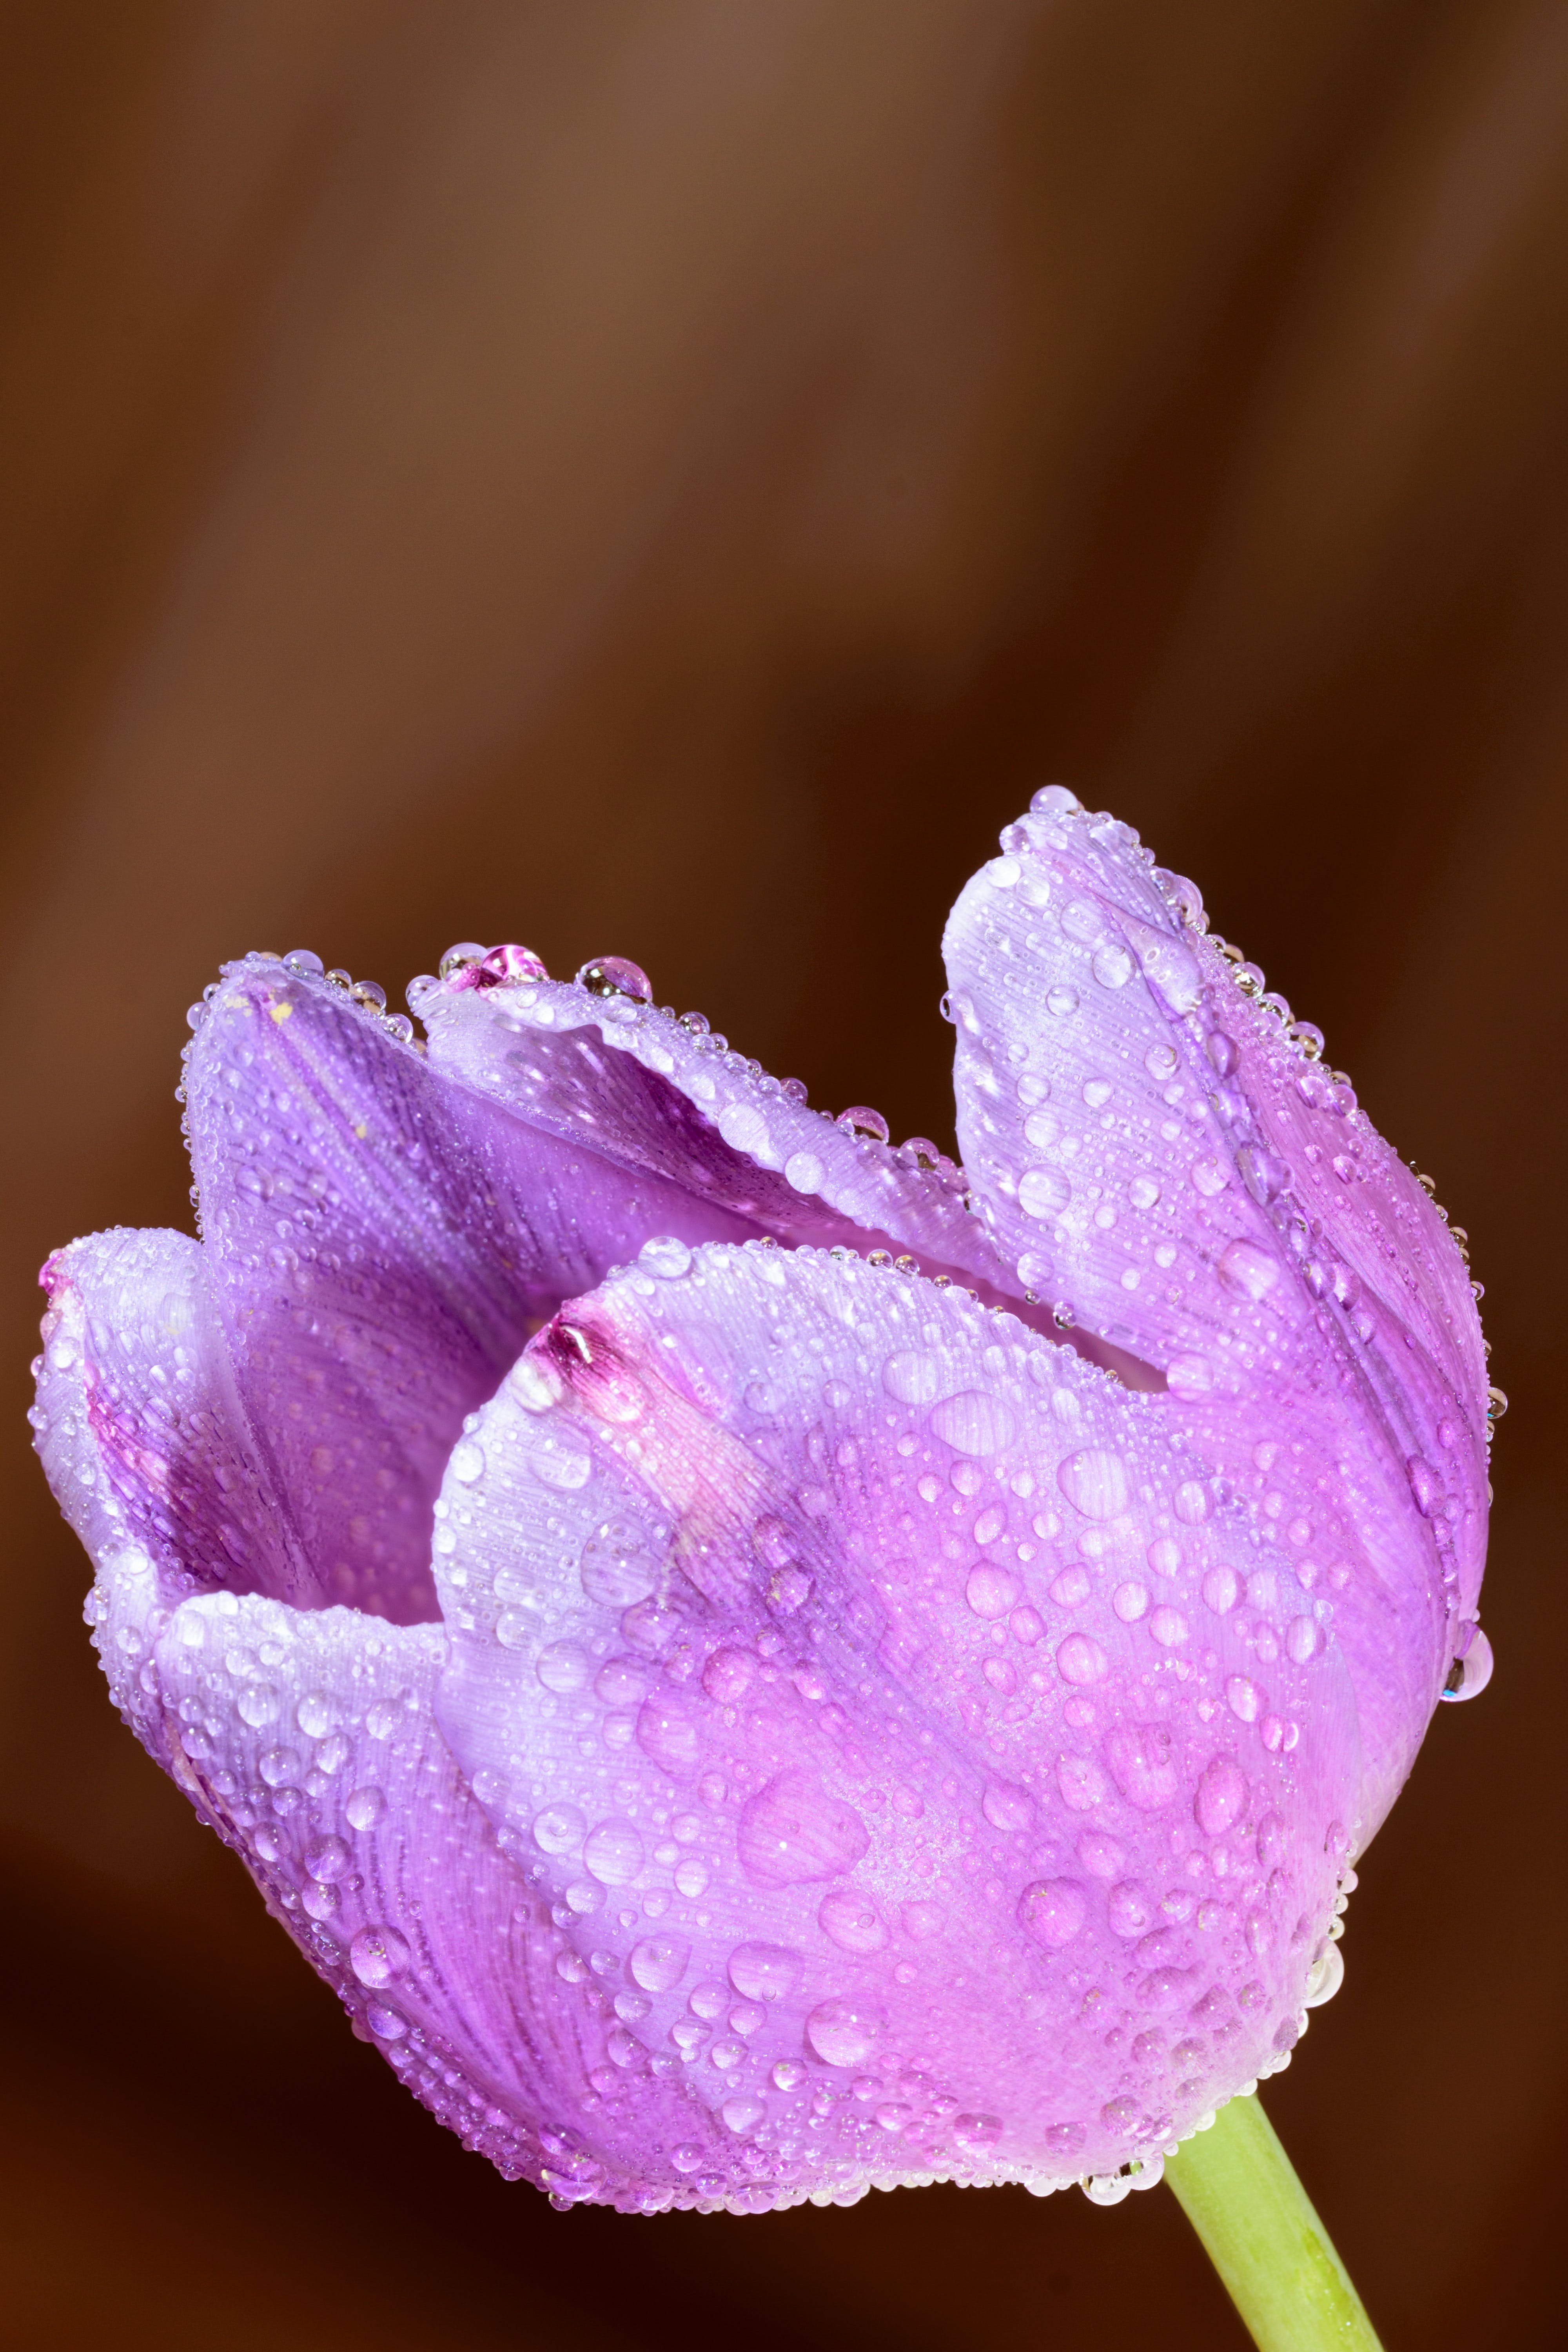 Shallow Focus Photo of Wet Purple Flower